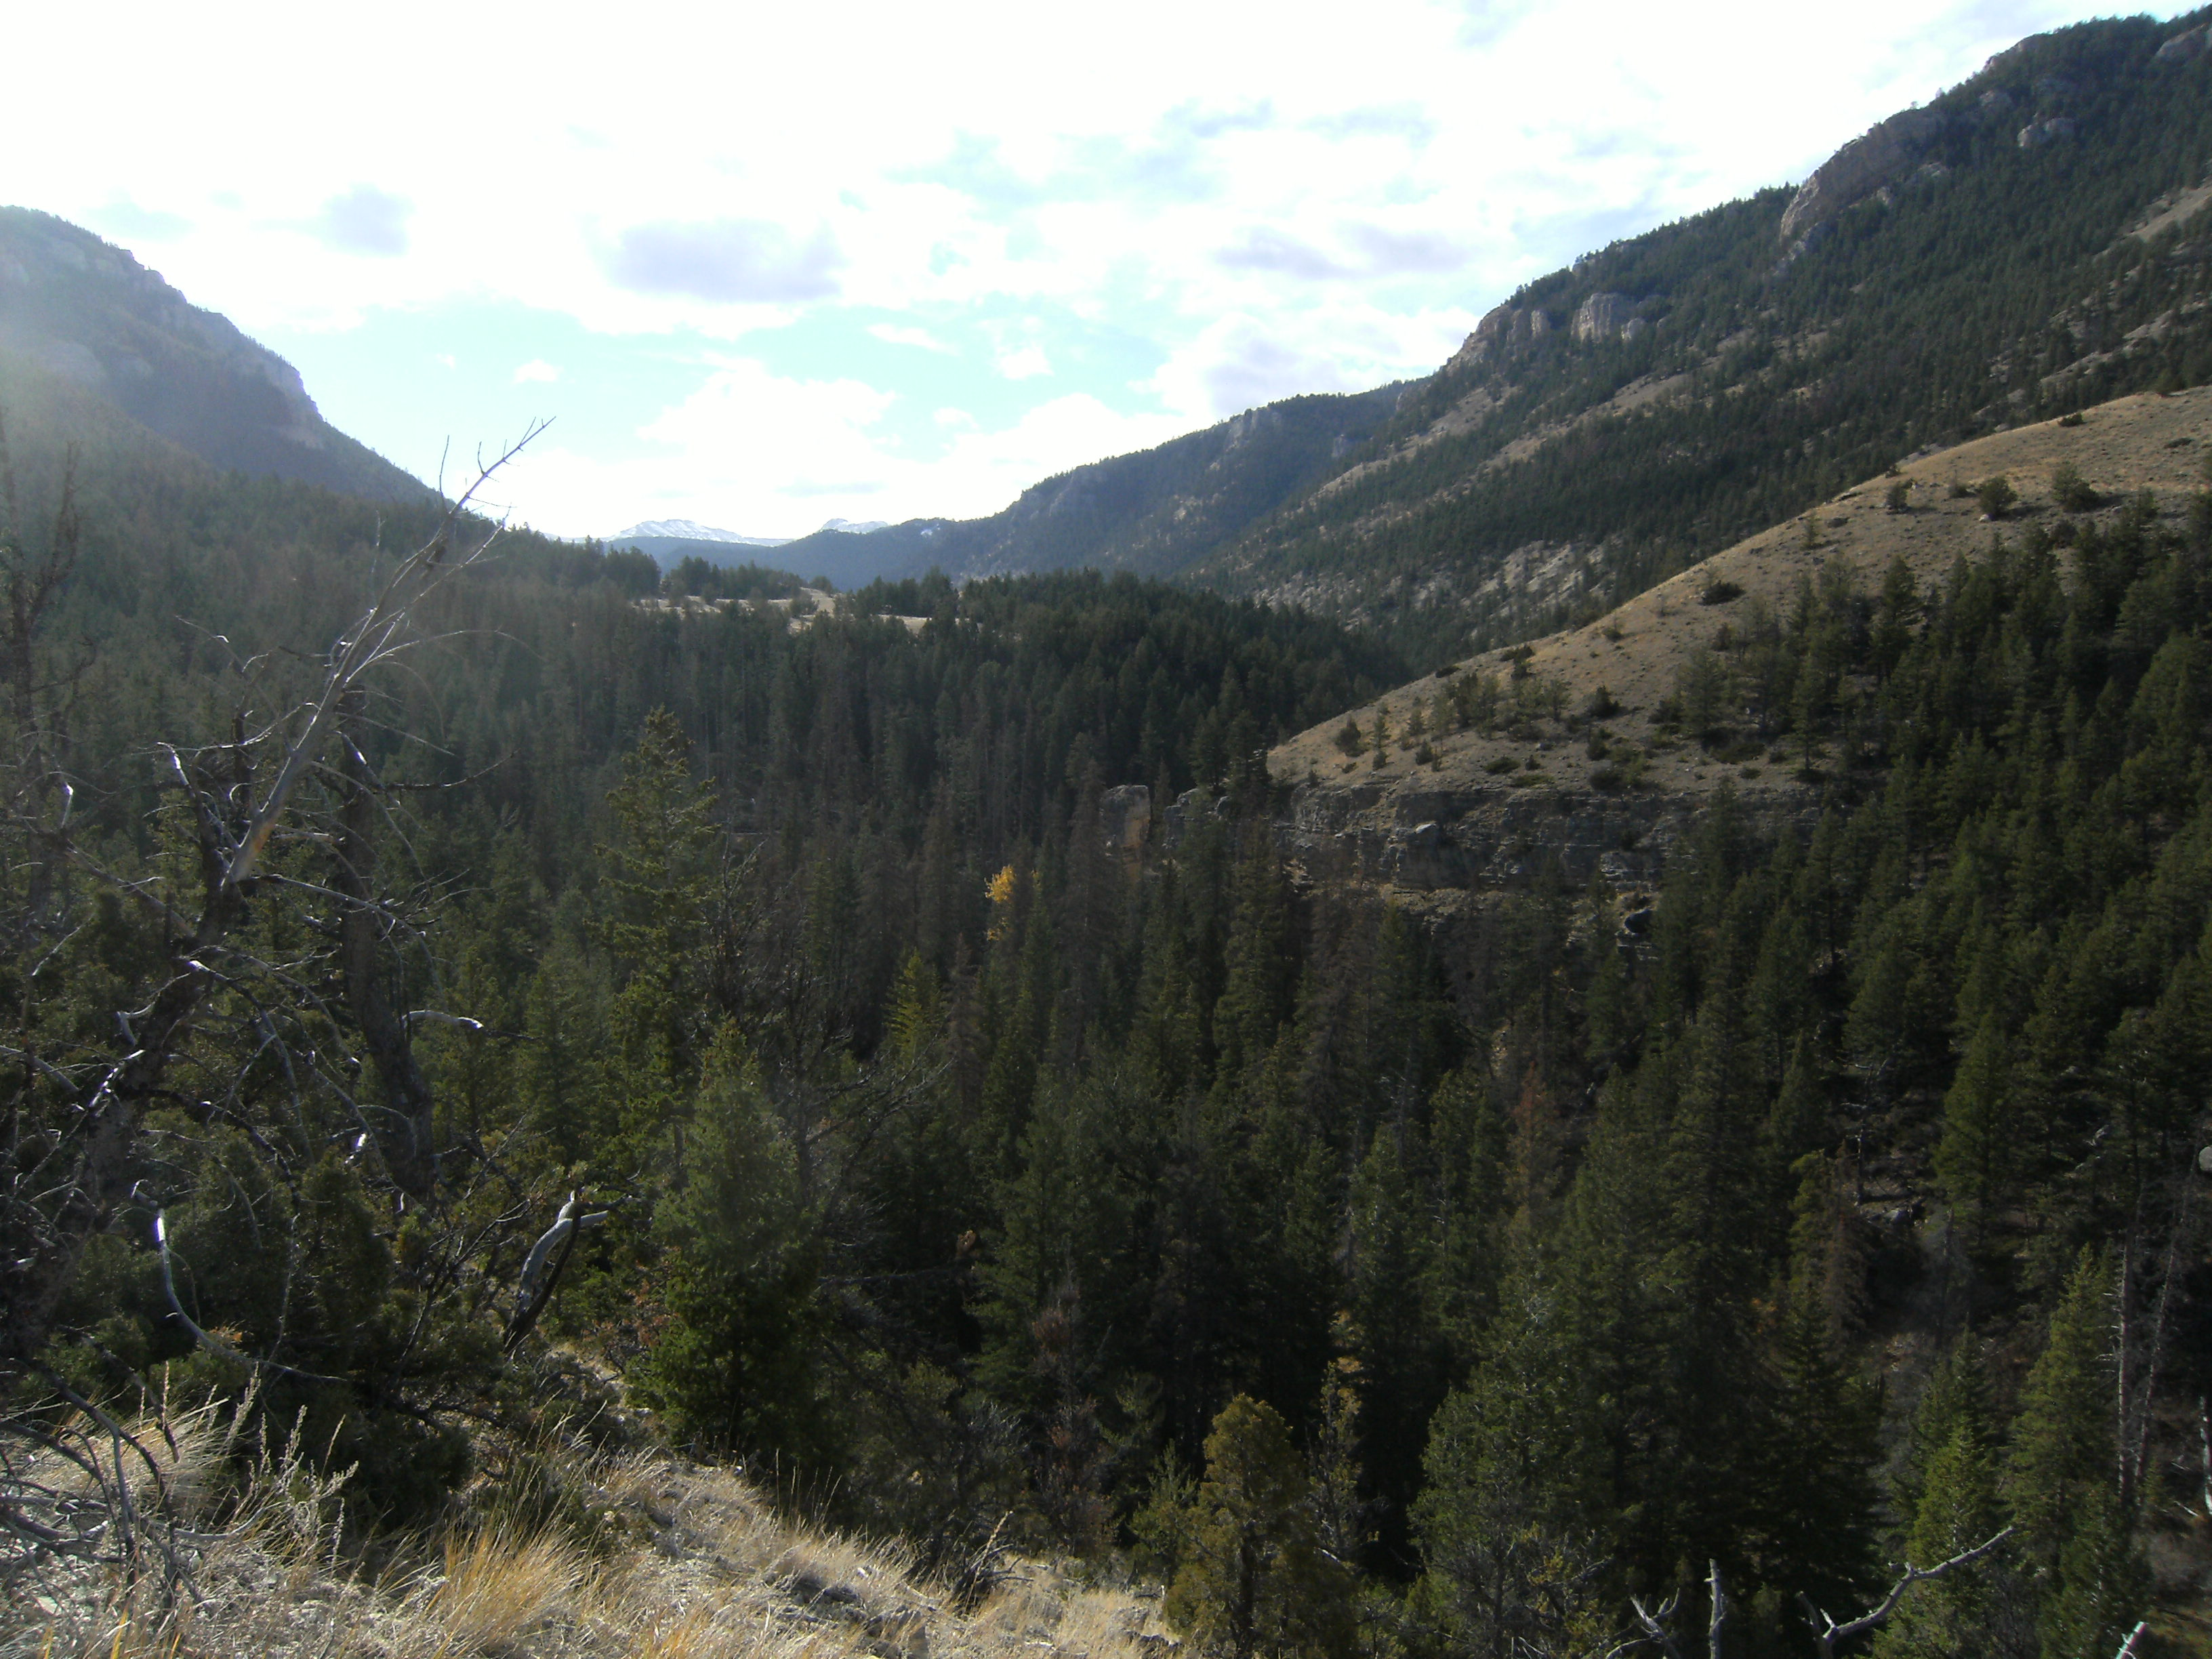 Looking into Dead Indian Valley